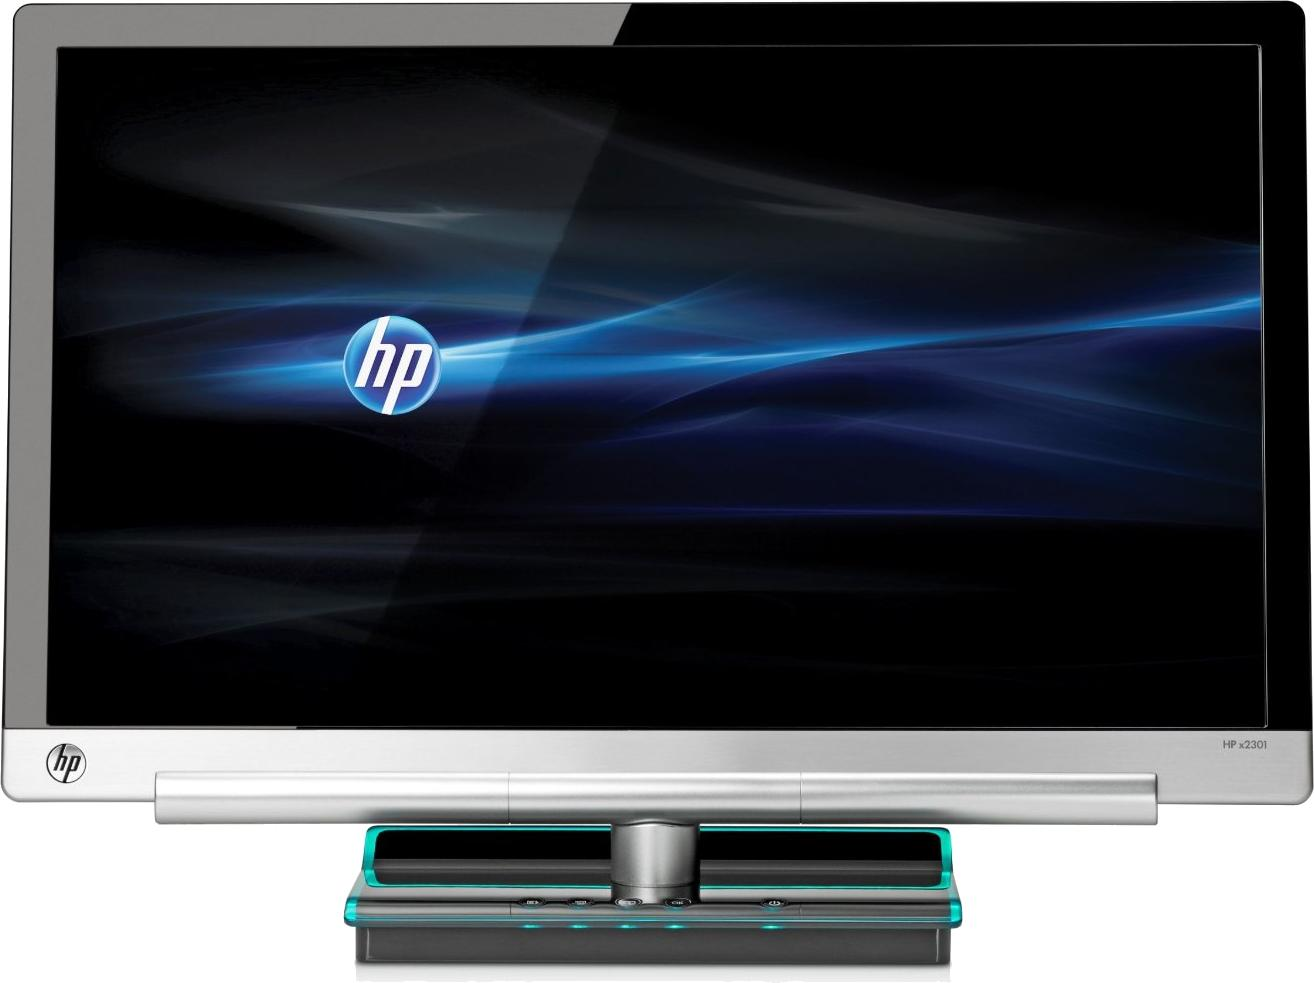 HP x2301 23 inch Diagonal LED Monitor